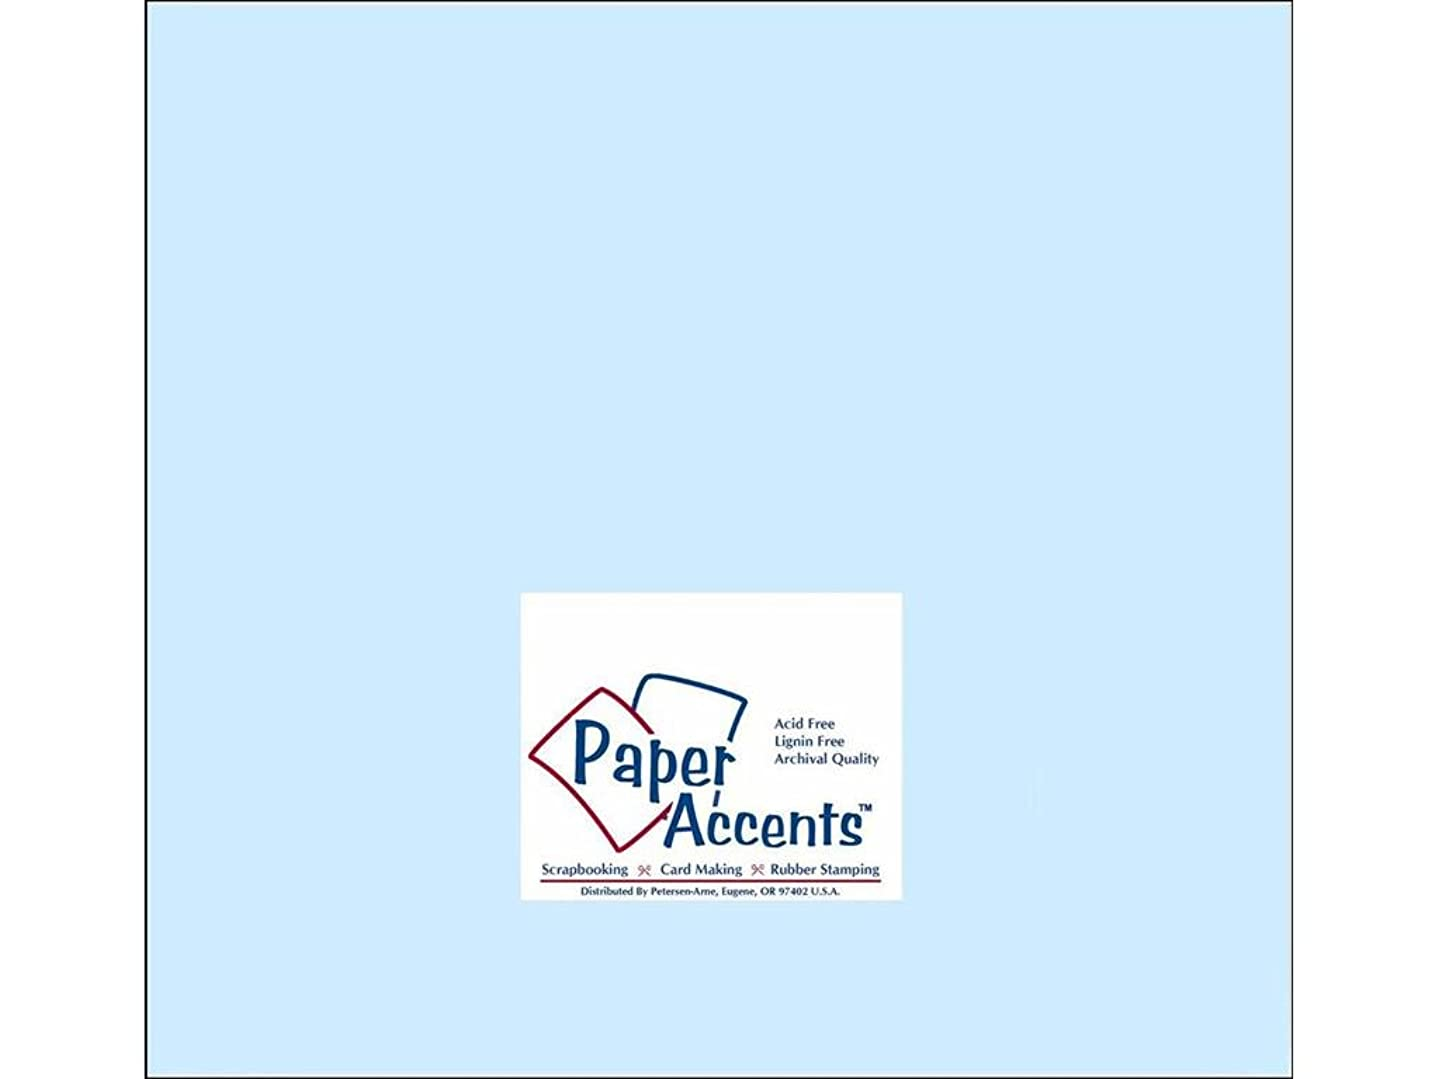 Accent Design Paper Accents Cdstk Smooth 12x12 60# Baby Blue tmw097149975